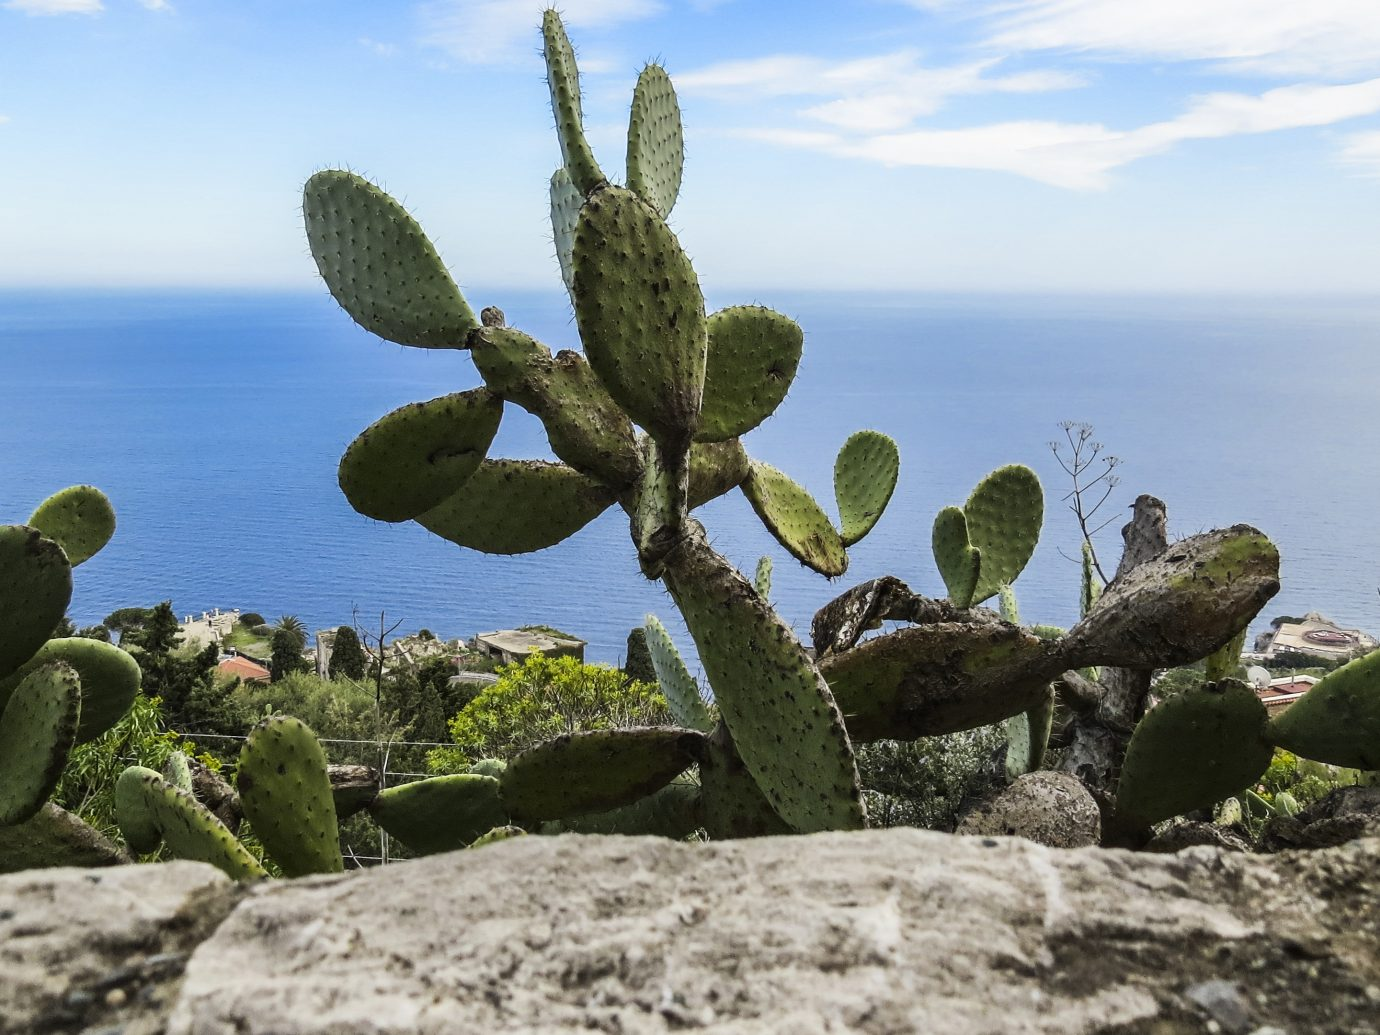 View of cactus and the sea of the coast from the city of Taormina, Sicily, Italy